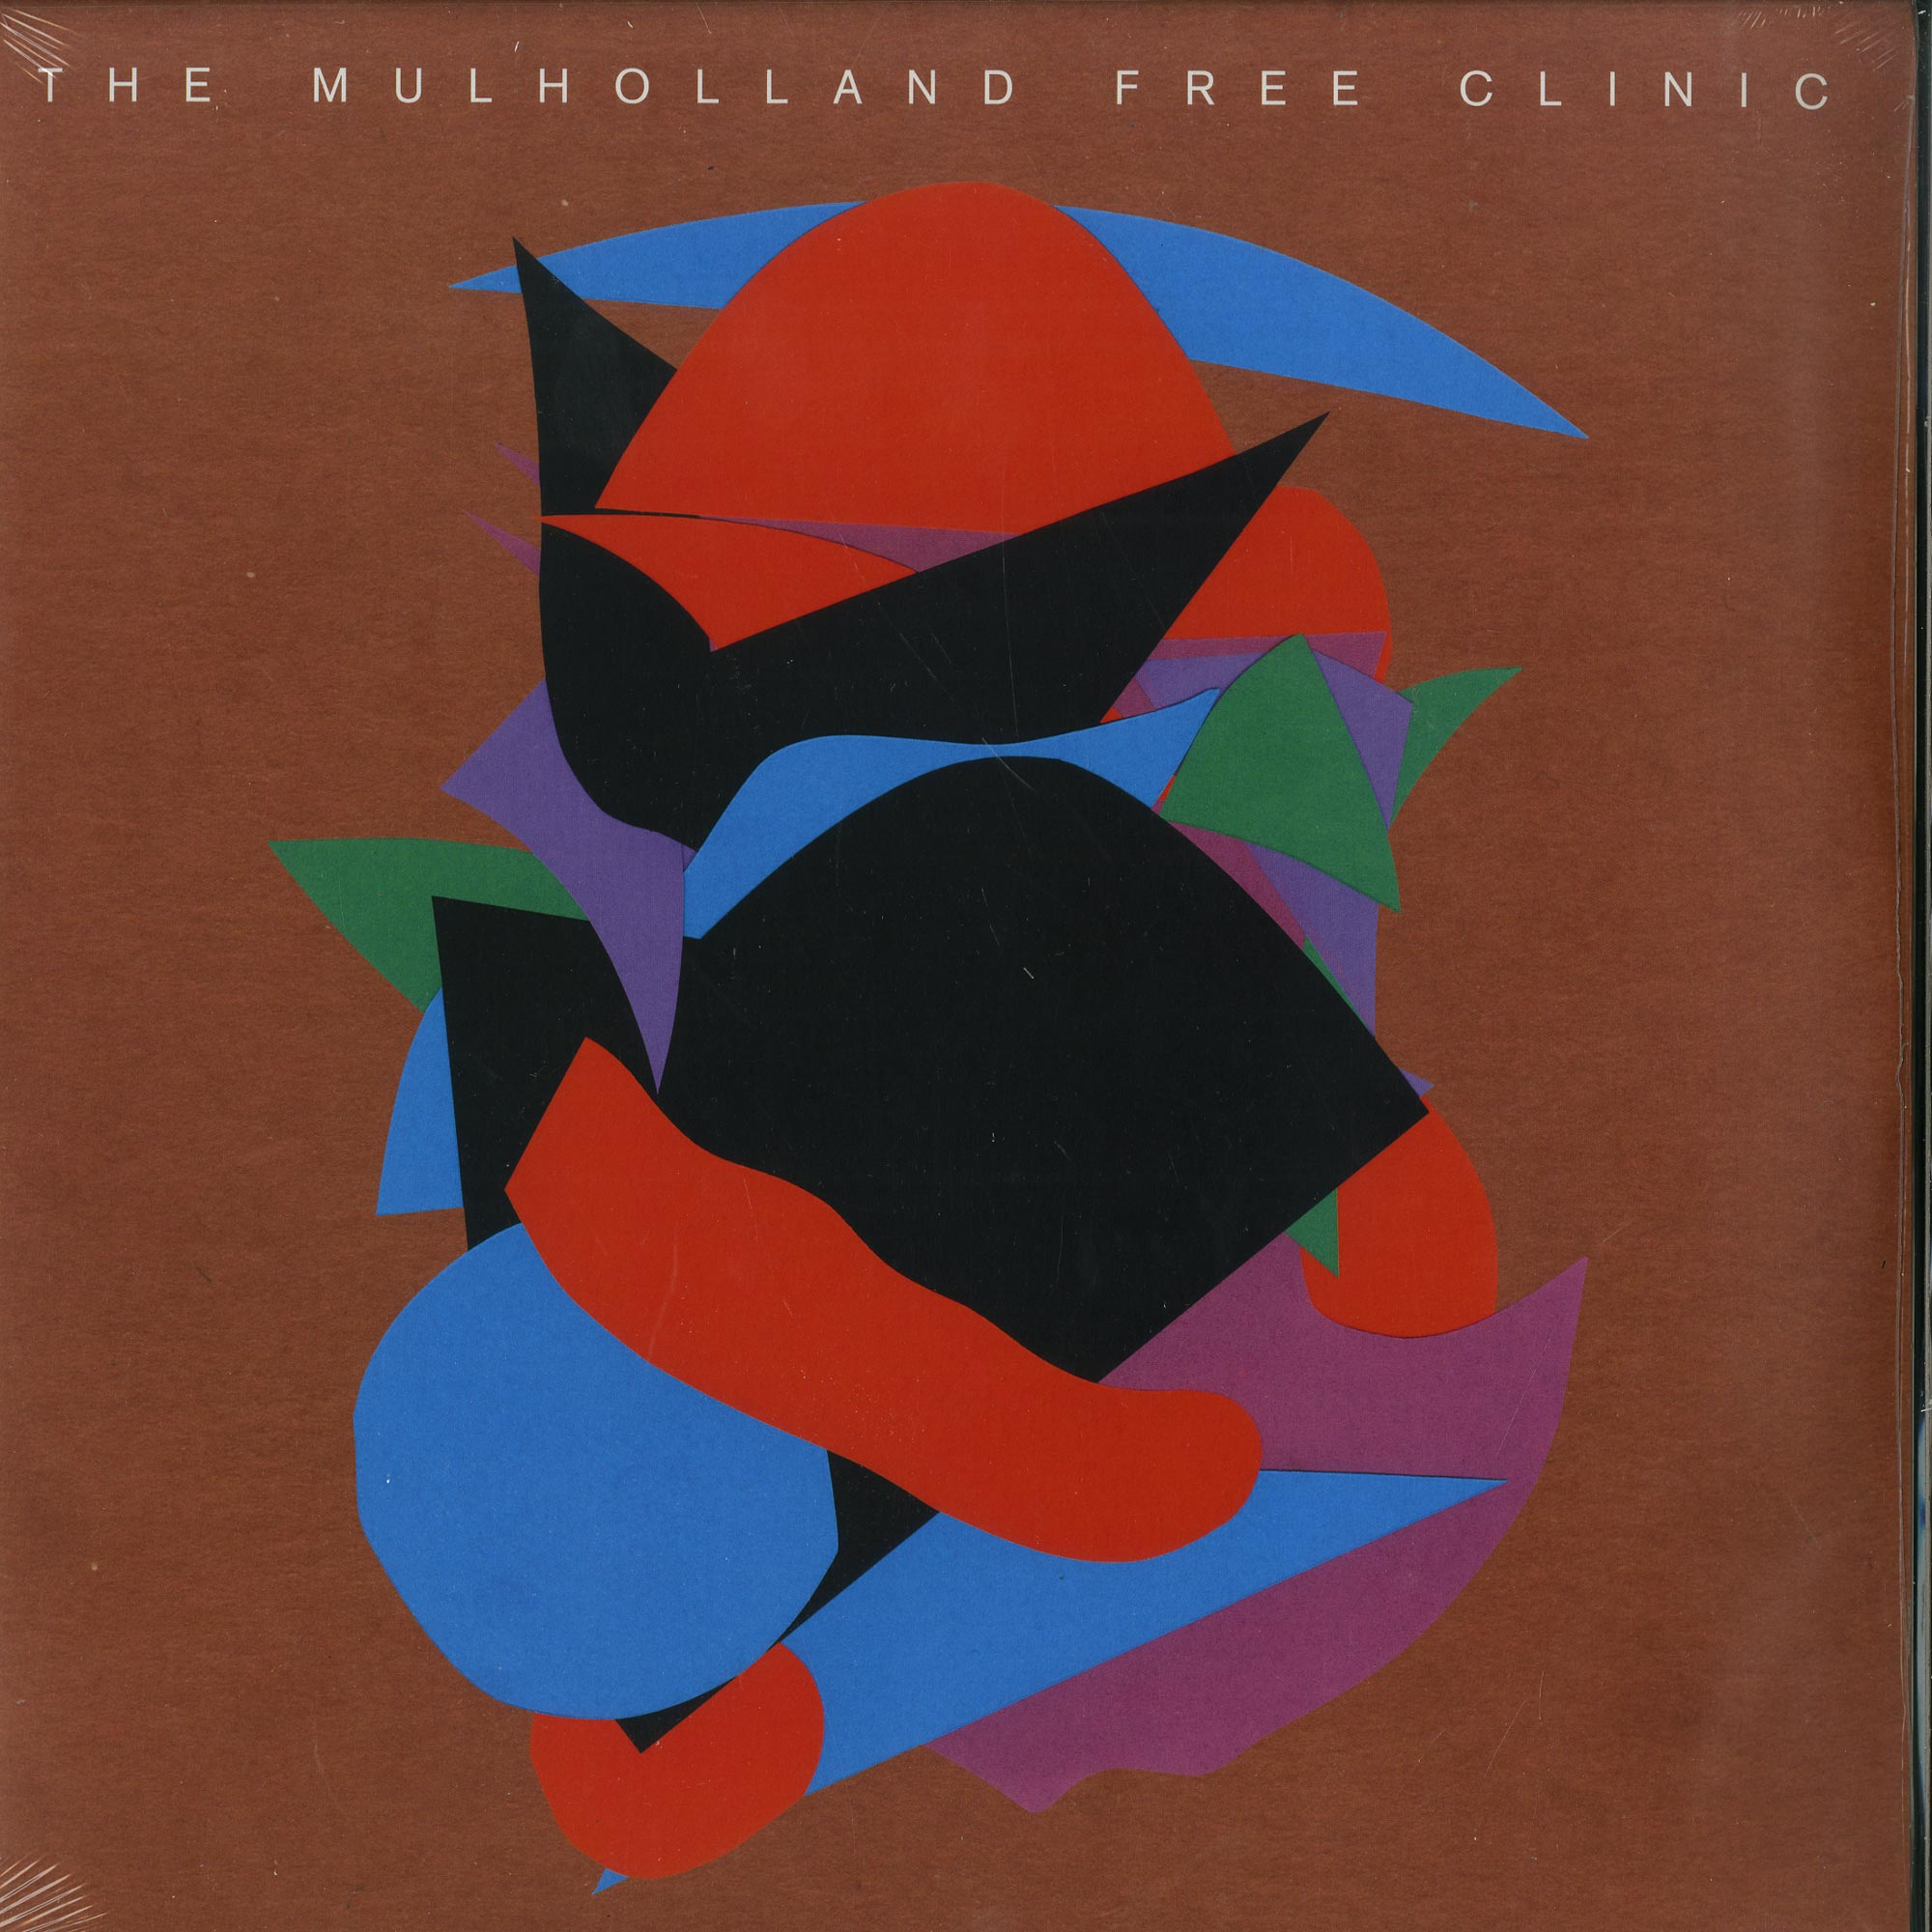 The Mulholland Free Clinic  - THE MULHOLLAND FREE CLINIC